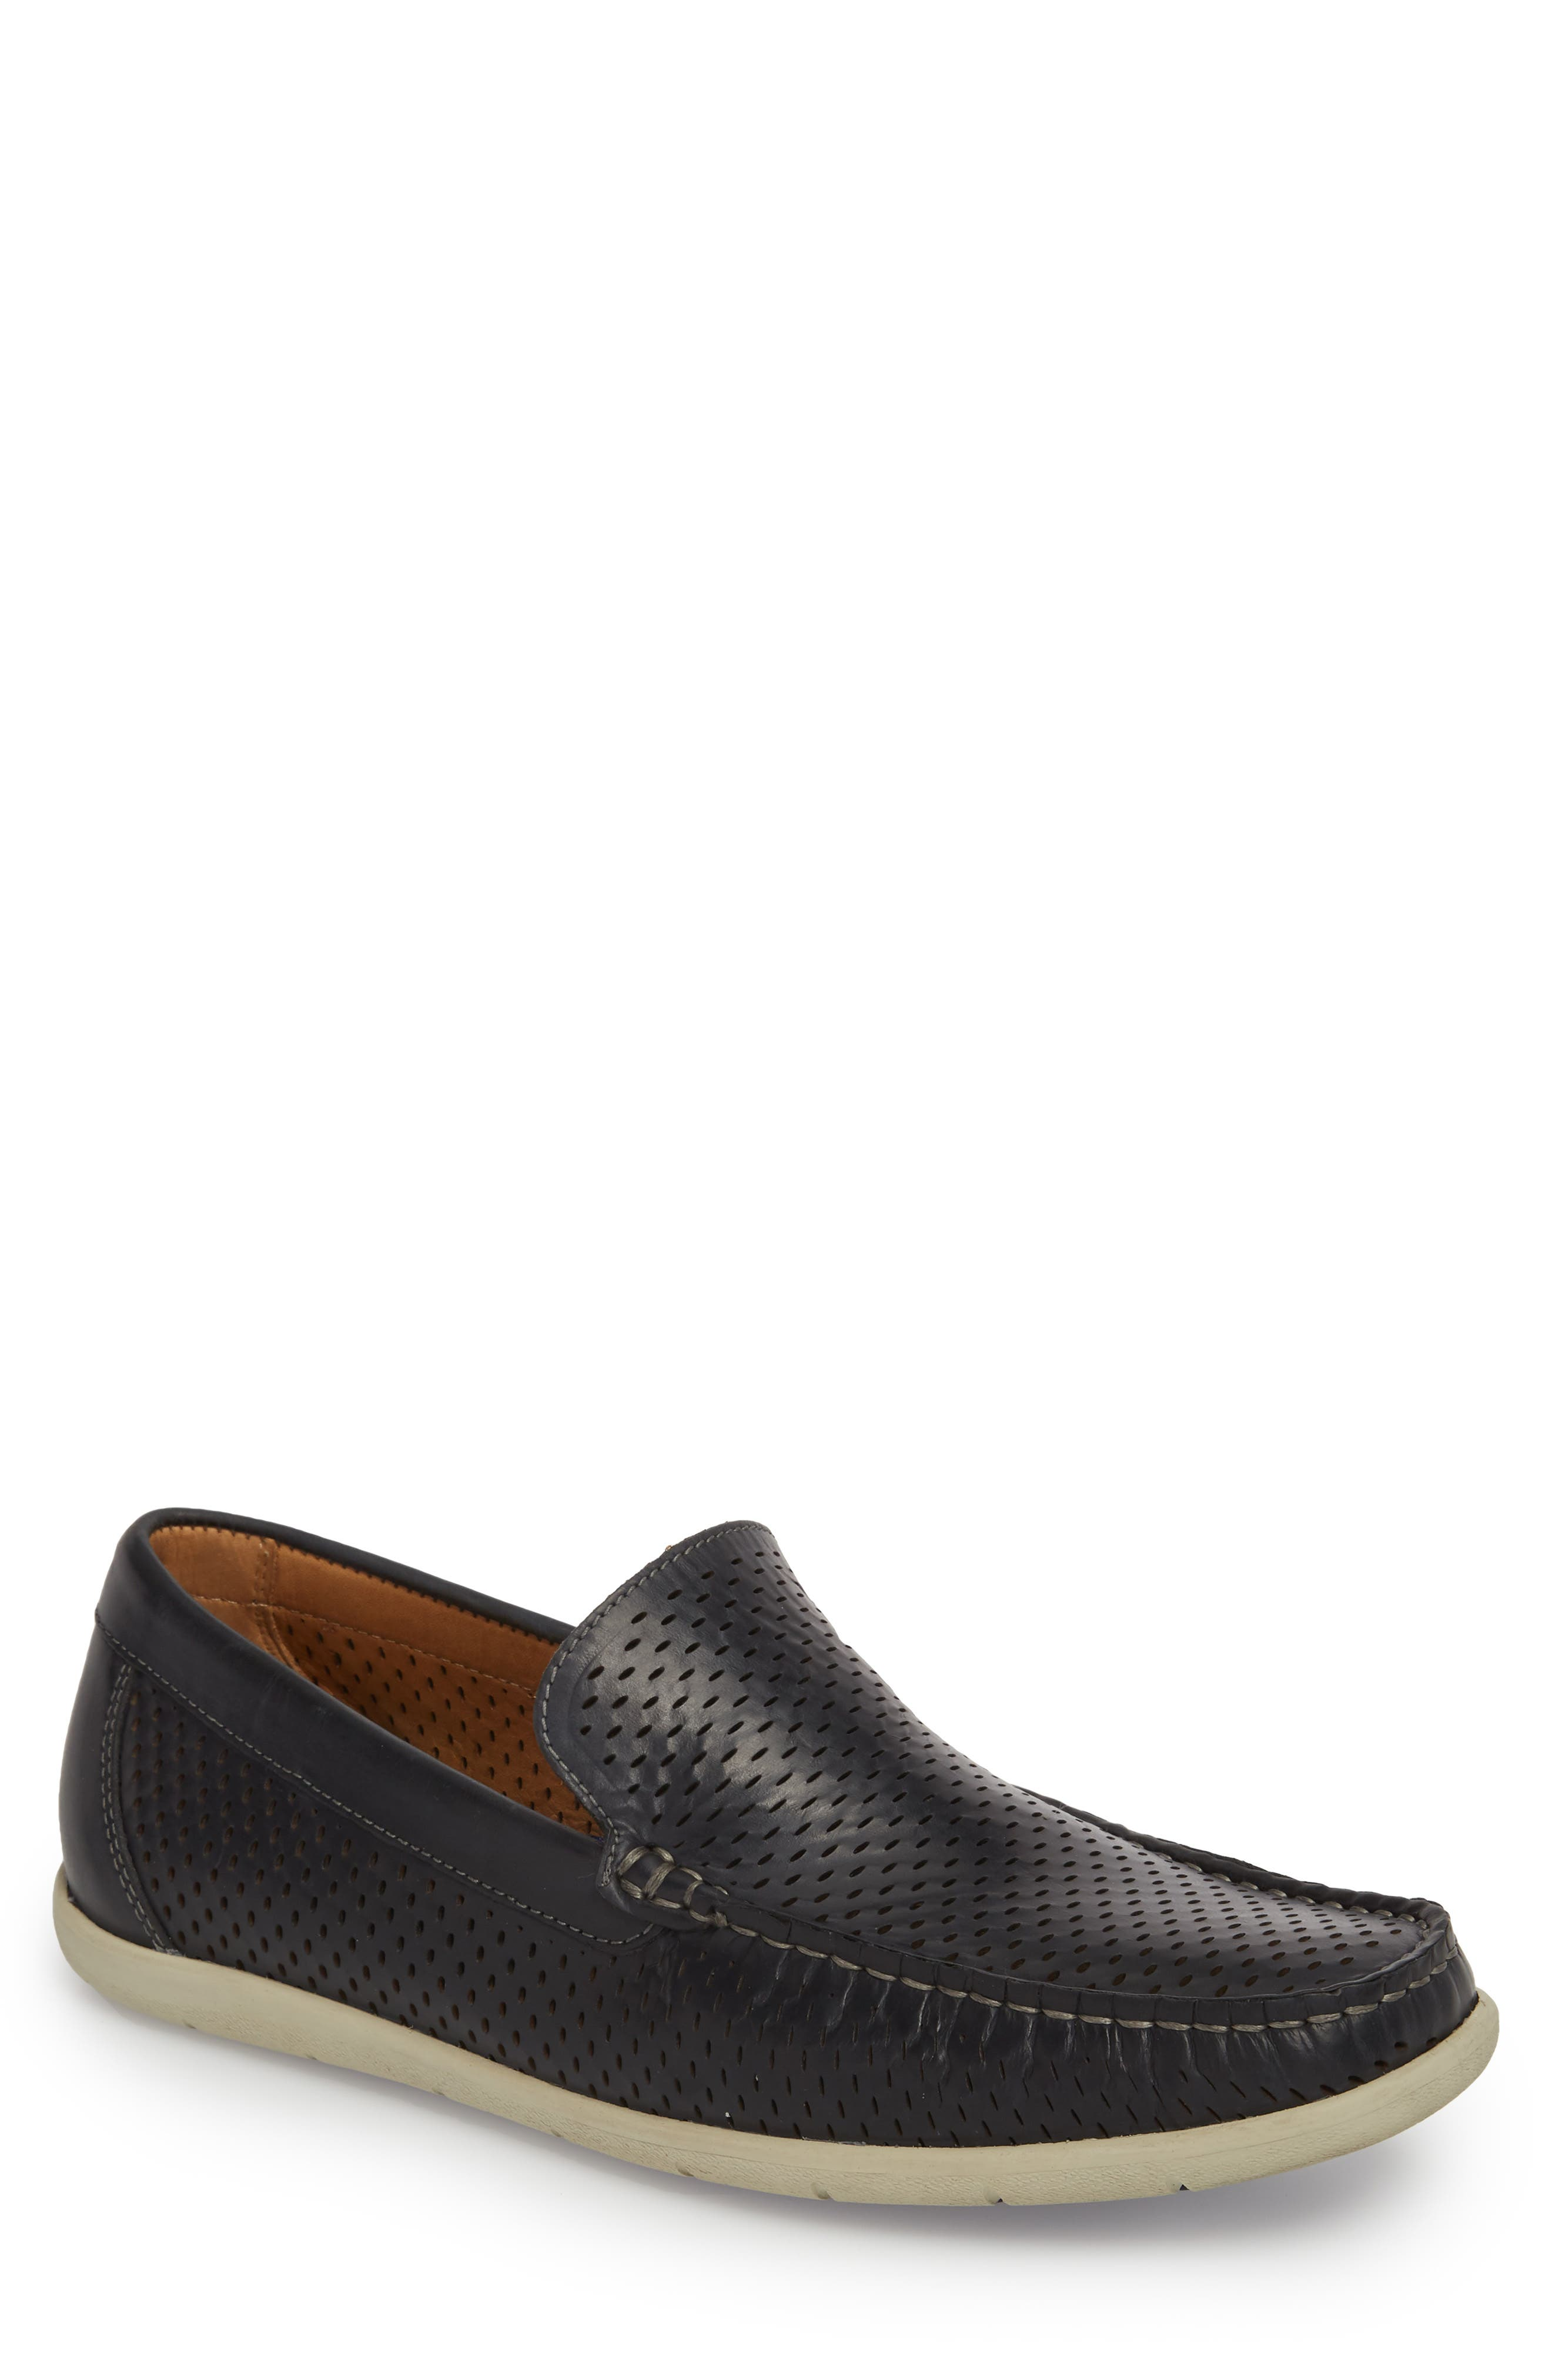 Manhattan Loafer,                             Main thumbnail 1, color,                             NAVY LEATHER